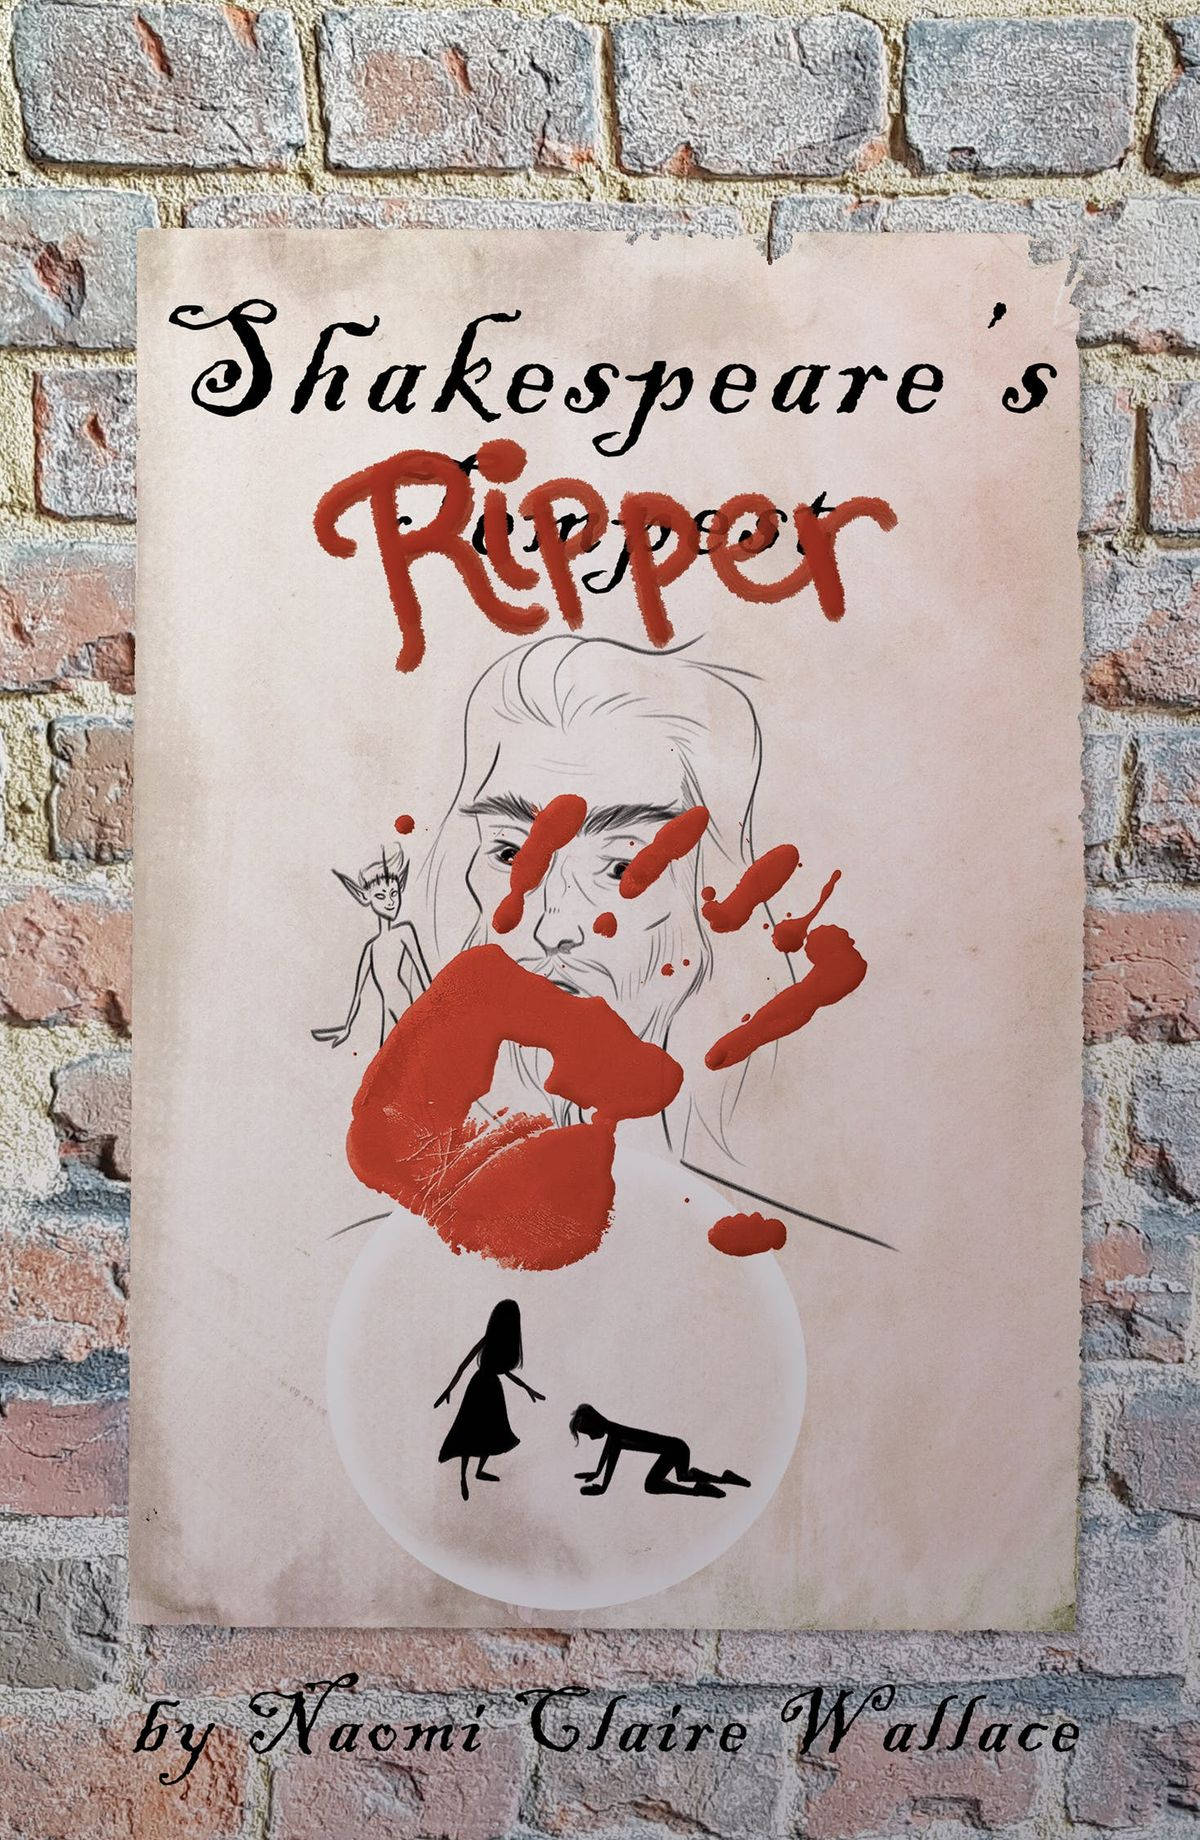 Book Signing - Shakespeares Ripper by Naomi Claire Wallace